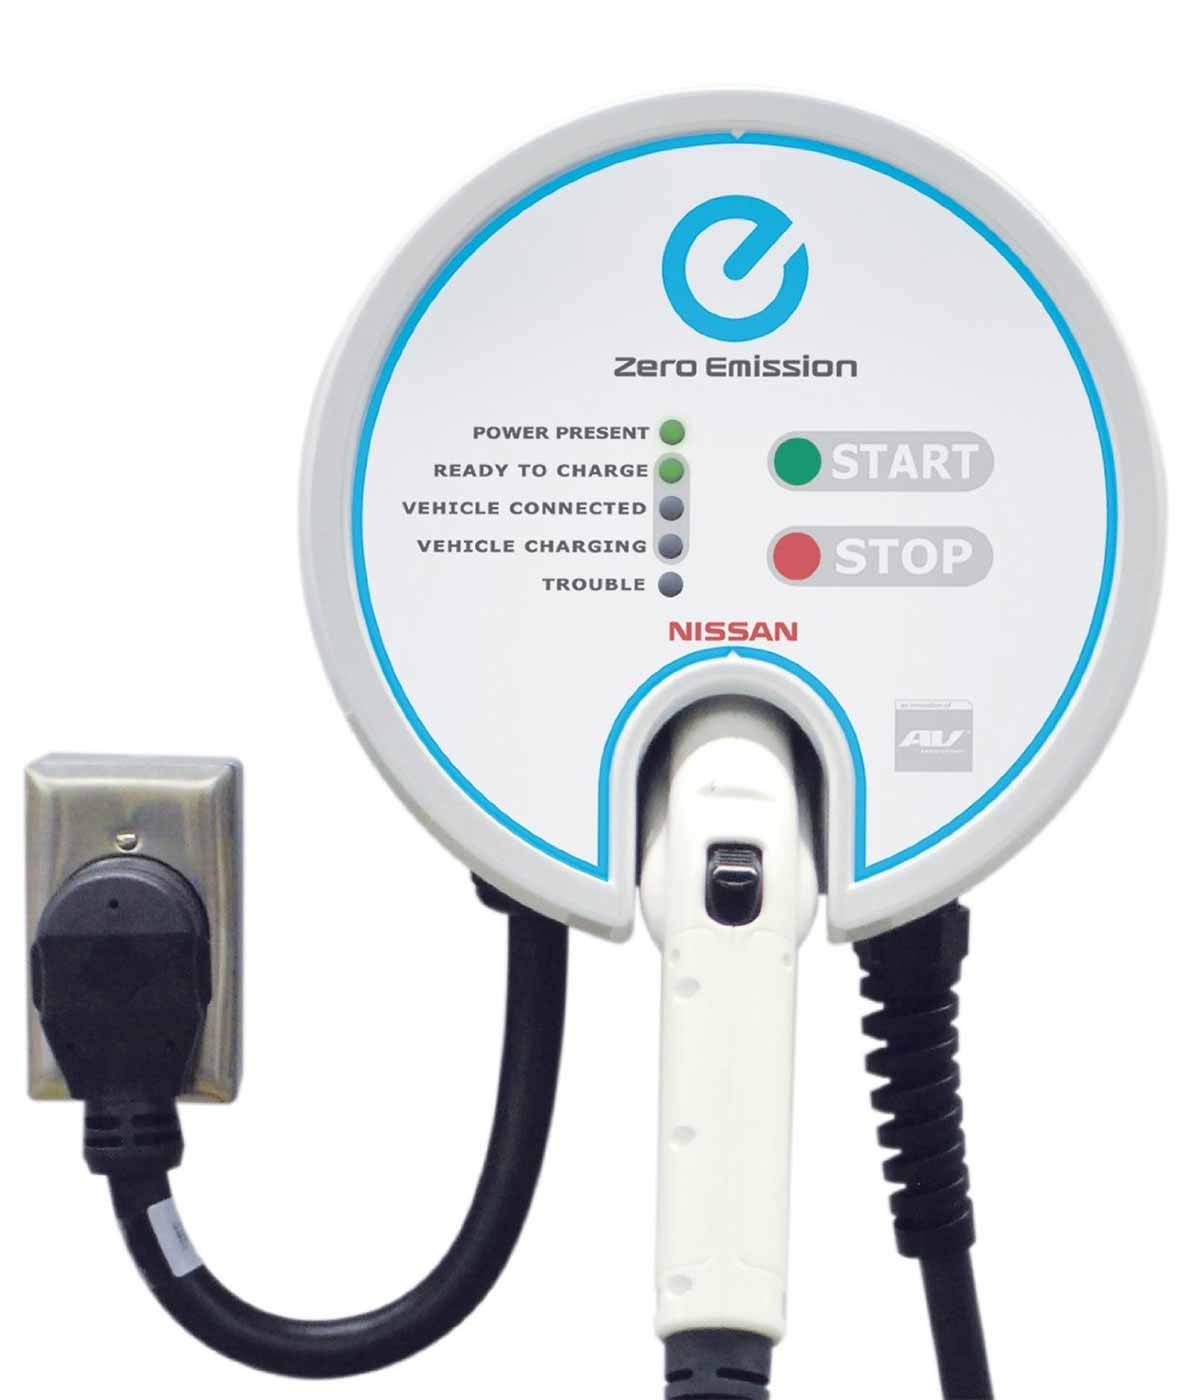 Aerovironment Evse Rs Pi 25 74900 Smart Charge America Nissan Wiring Usb Harness Connection Electric Car Charging Station Detail View